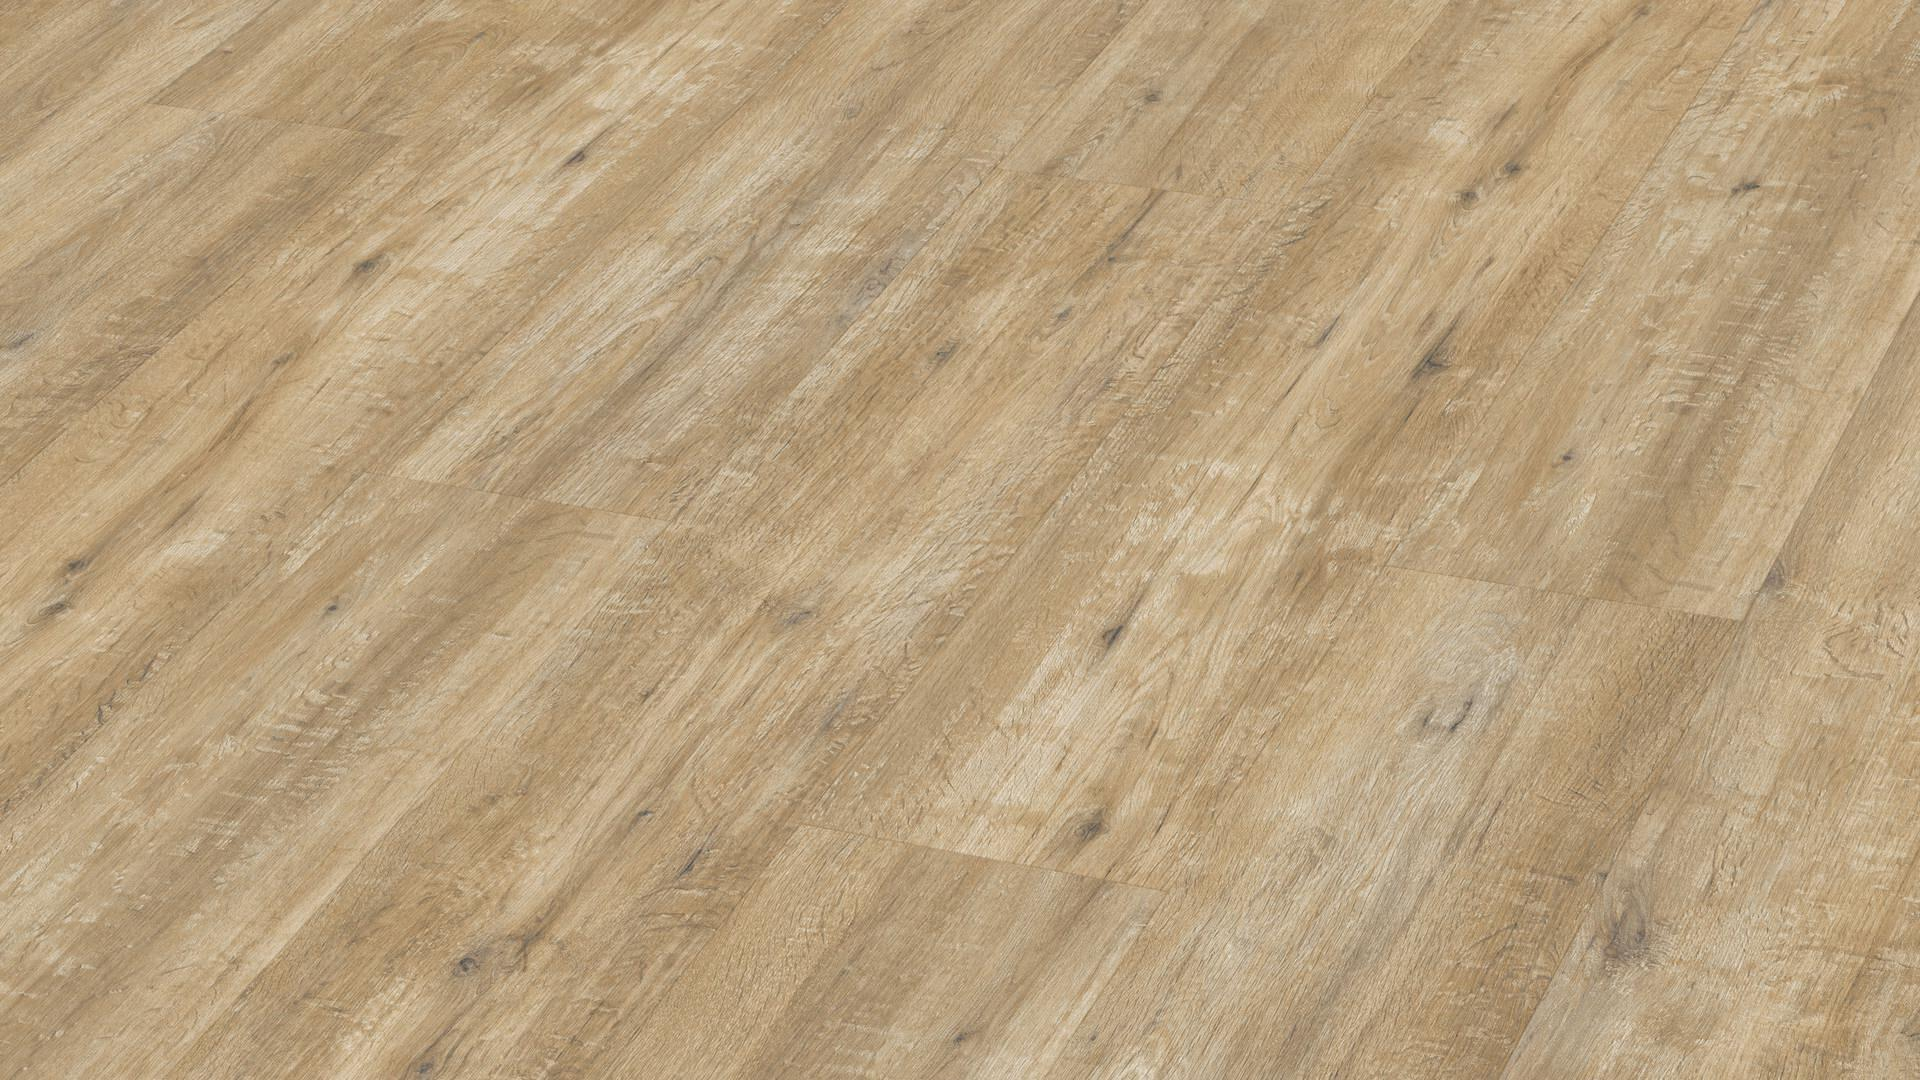 Design flooring MeisterDesign. comfort DD 600 S Light fjord oak 6846